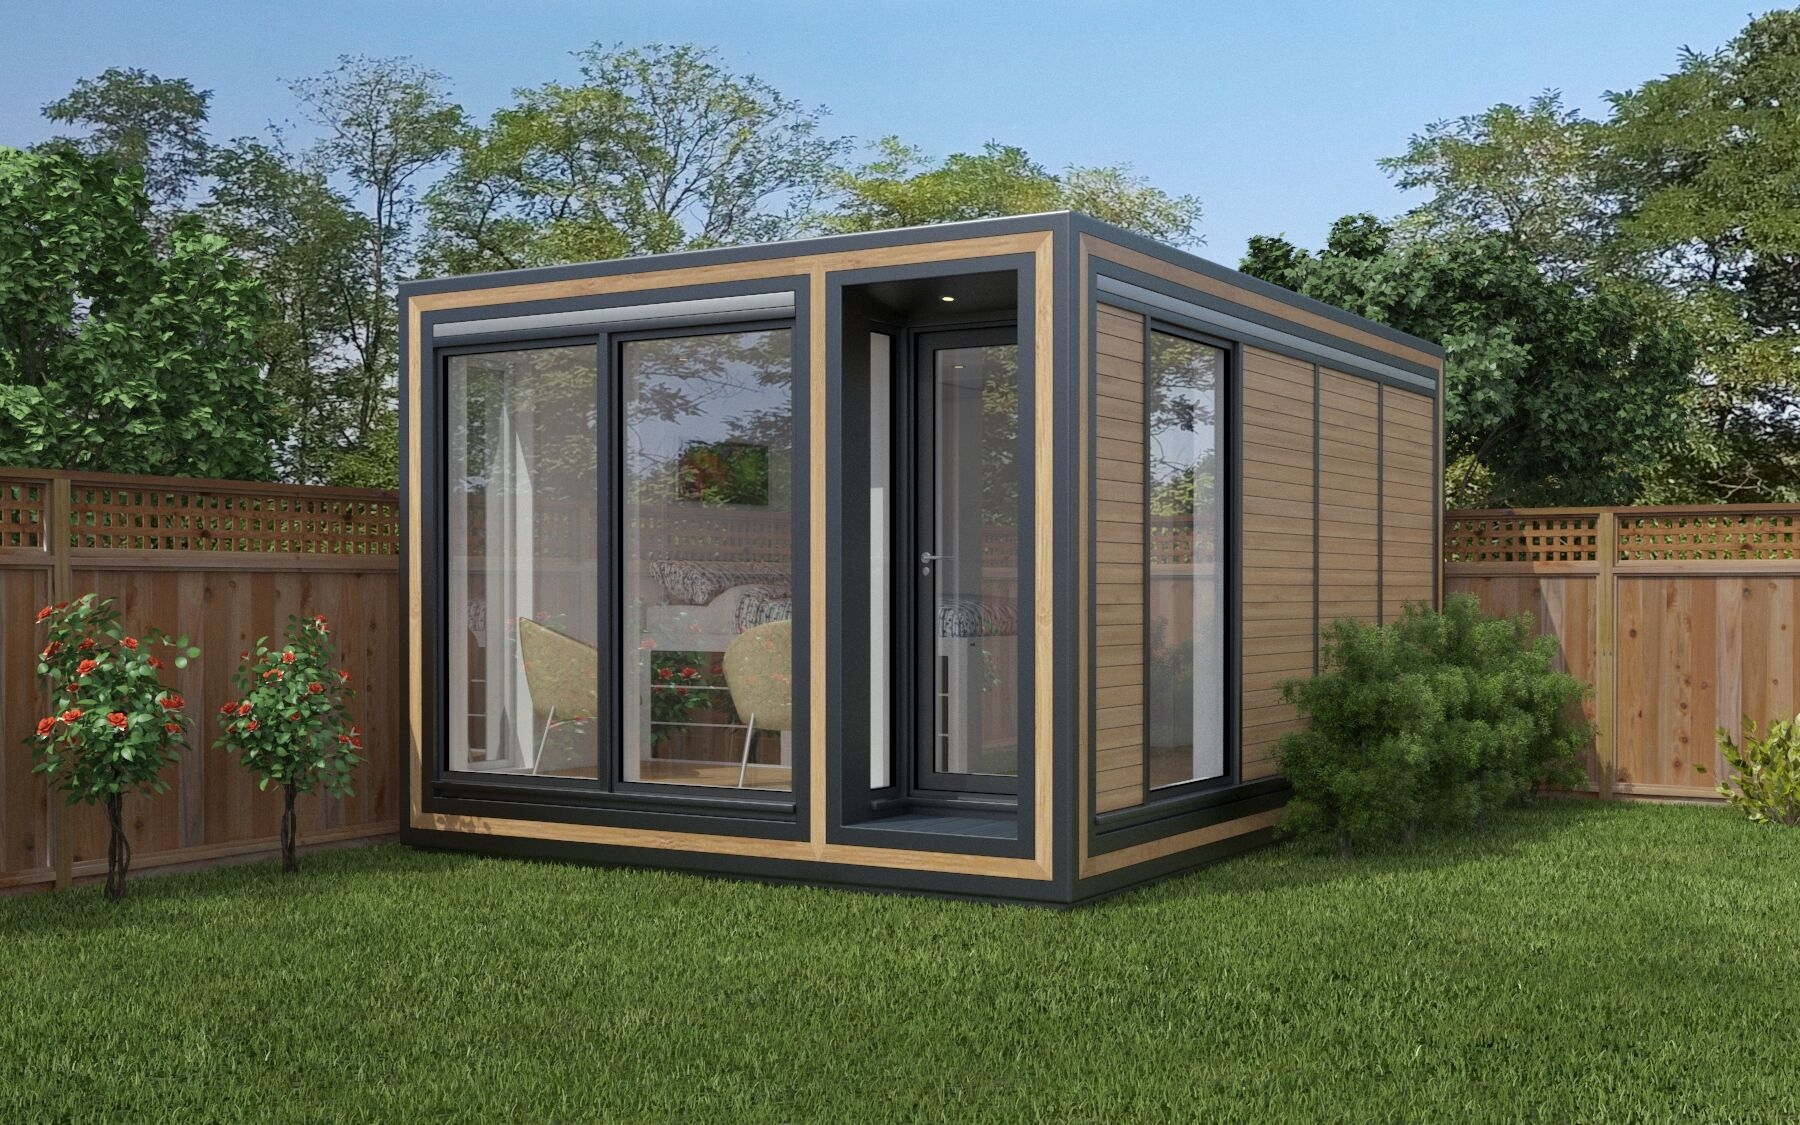 ZEDBOX 345  (3 x 4.5)  Internal Size: 3188 x 4817  External Size: 3658 x 5287  Bed Options: Single or Double  Kitchen Options: Micro Kitchen or Kitchen  Wet Room Options: Yes  Portico: Yes  Price:  £29,000    Optional Extras    Request Zedbox Catalogue